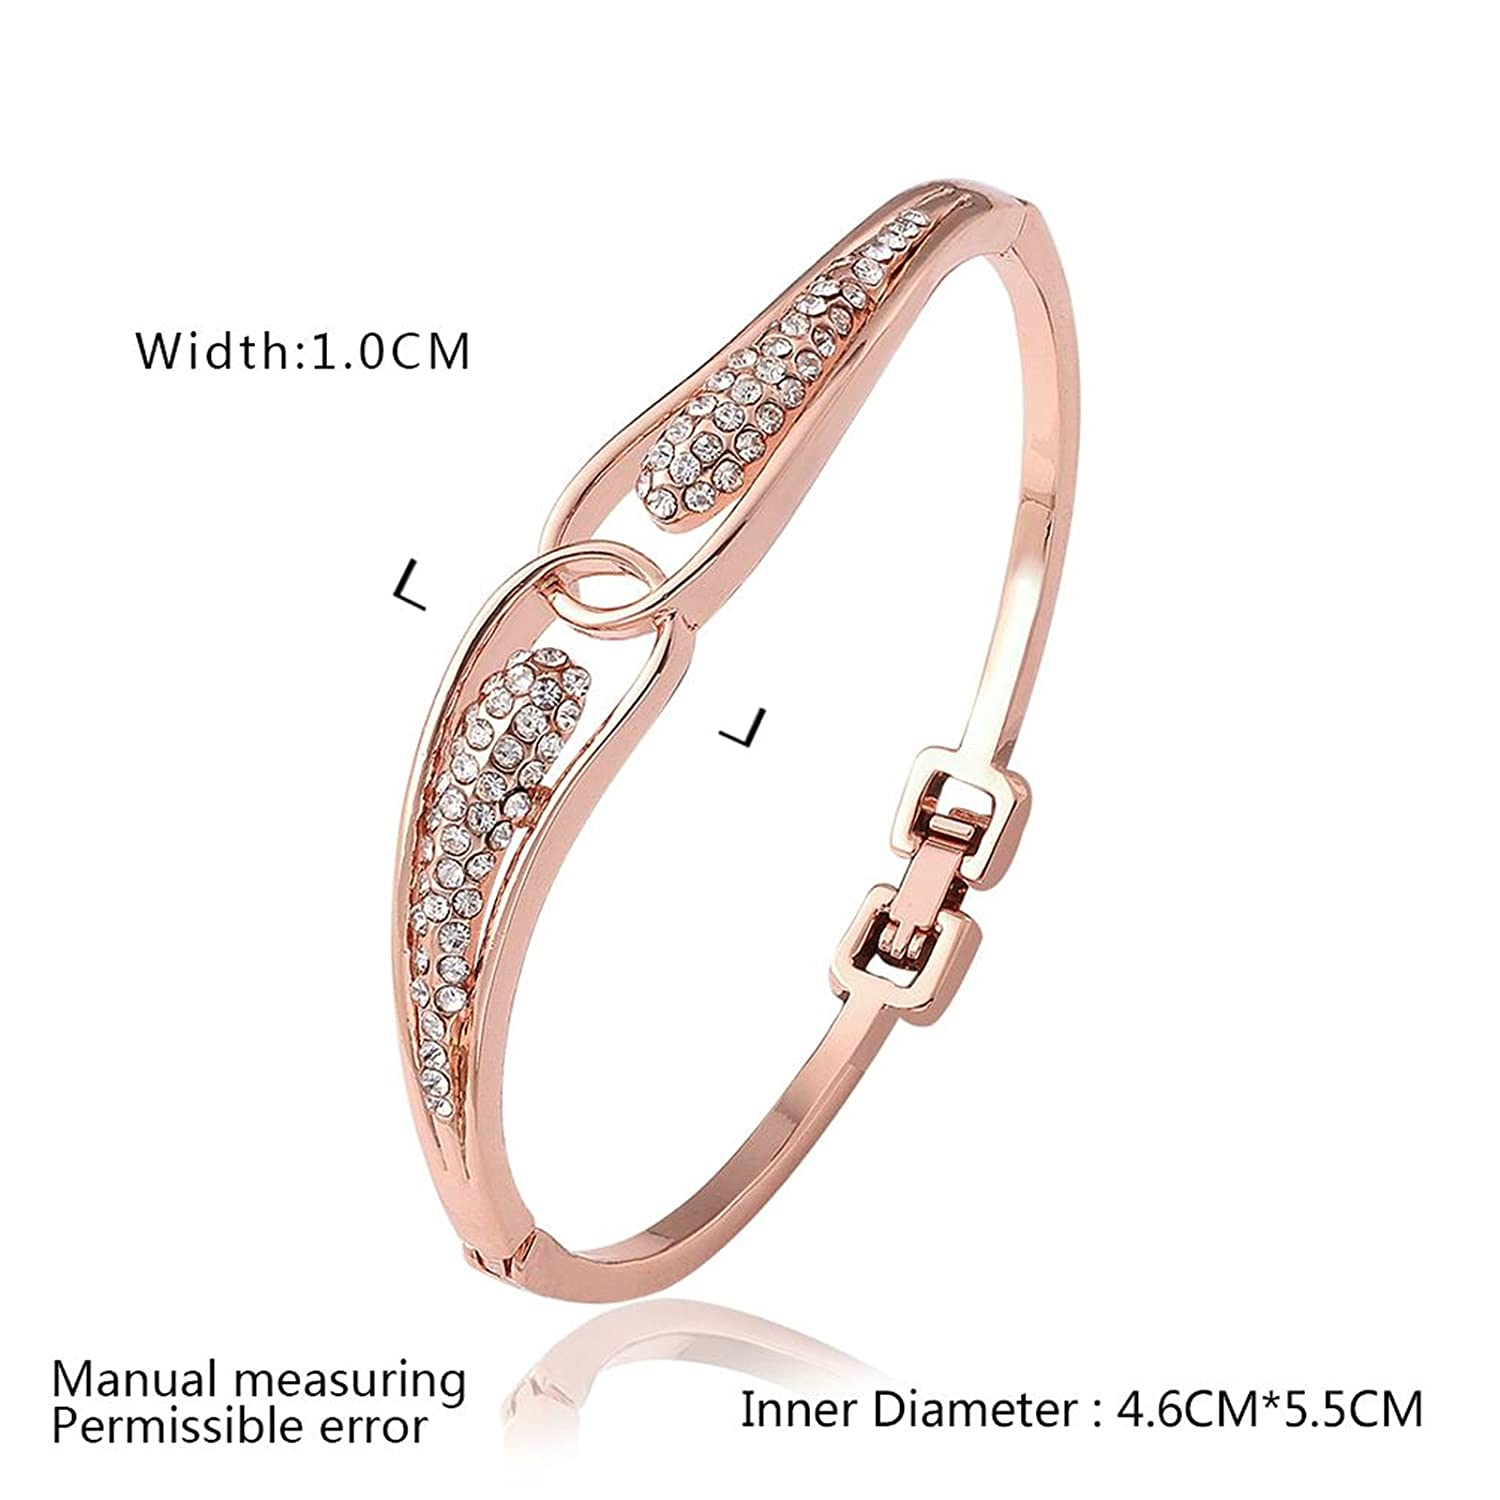 Gnzoe Fashion Jewelry Gold Plated Womens Charm Bracelet Bangle Cubic Zirconia Hollow Design Leaf Shape Rose Gold